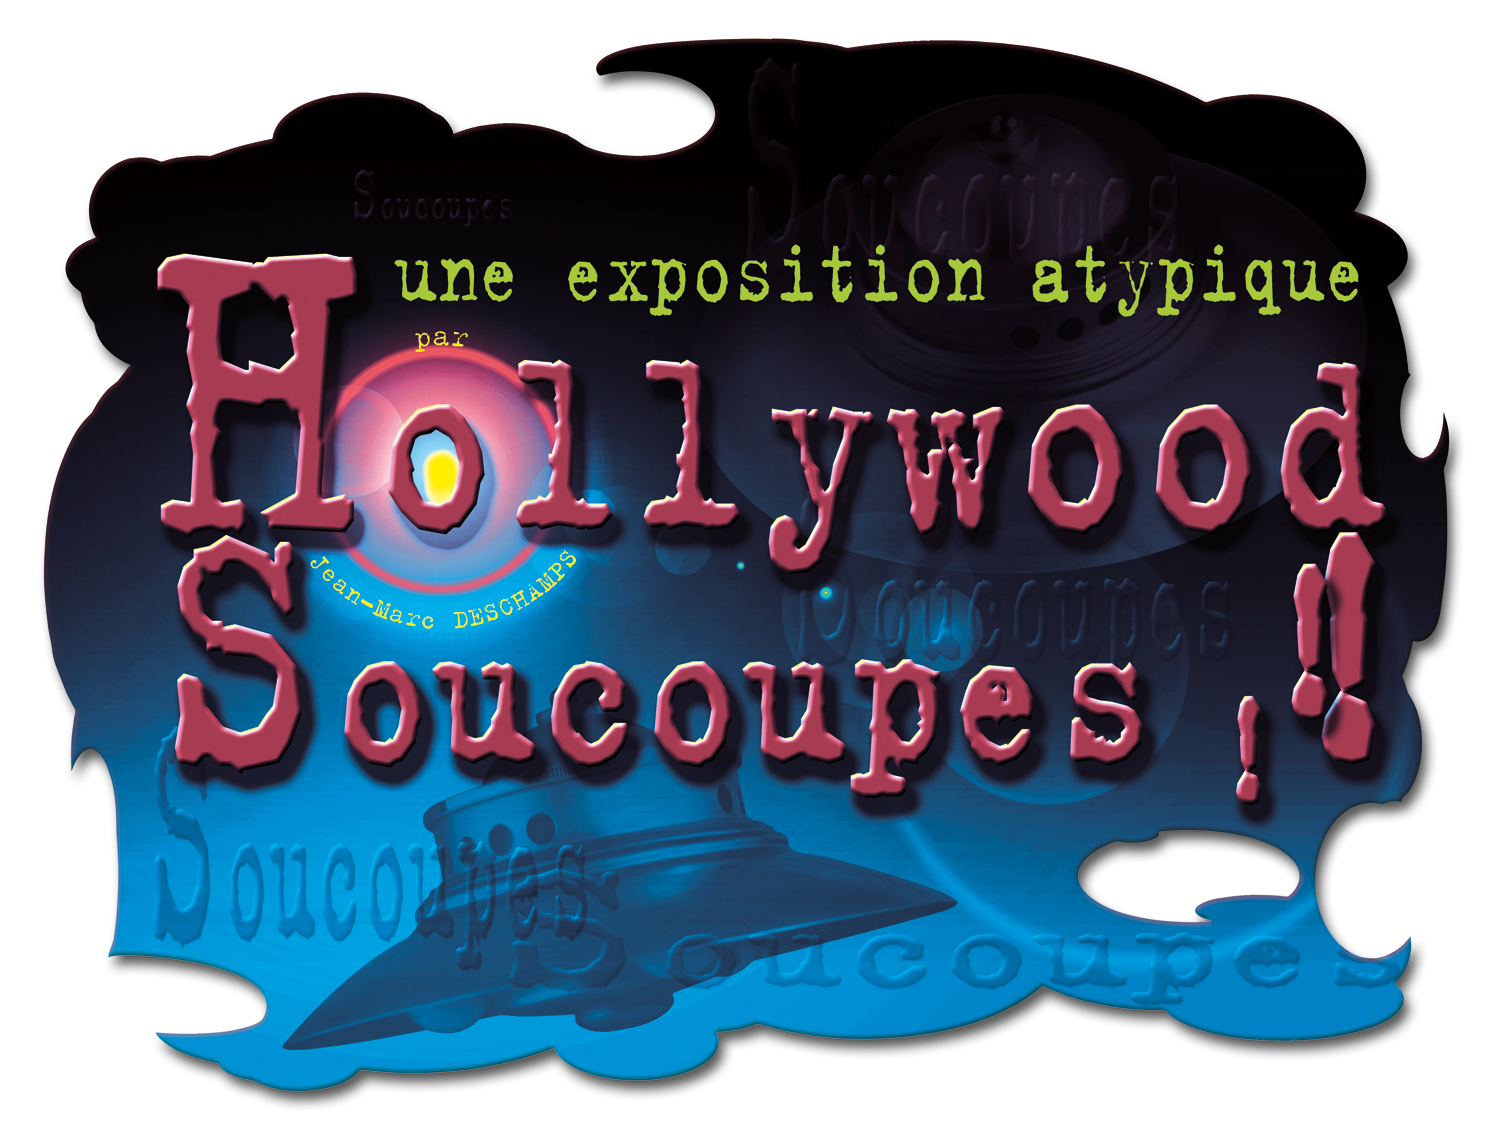 Hollywood soucoupe